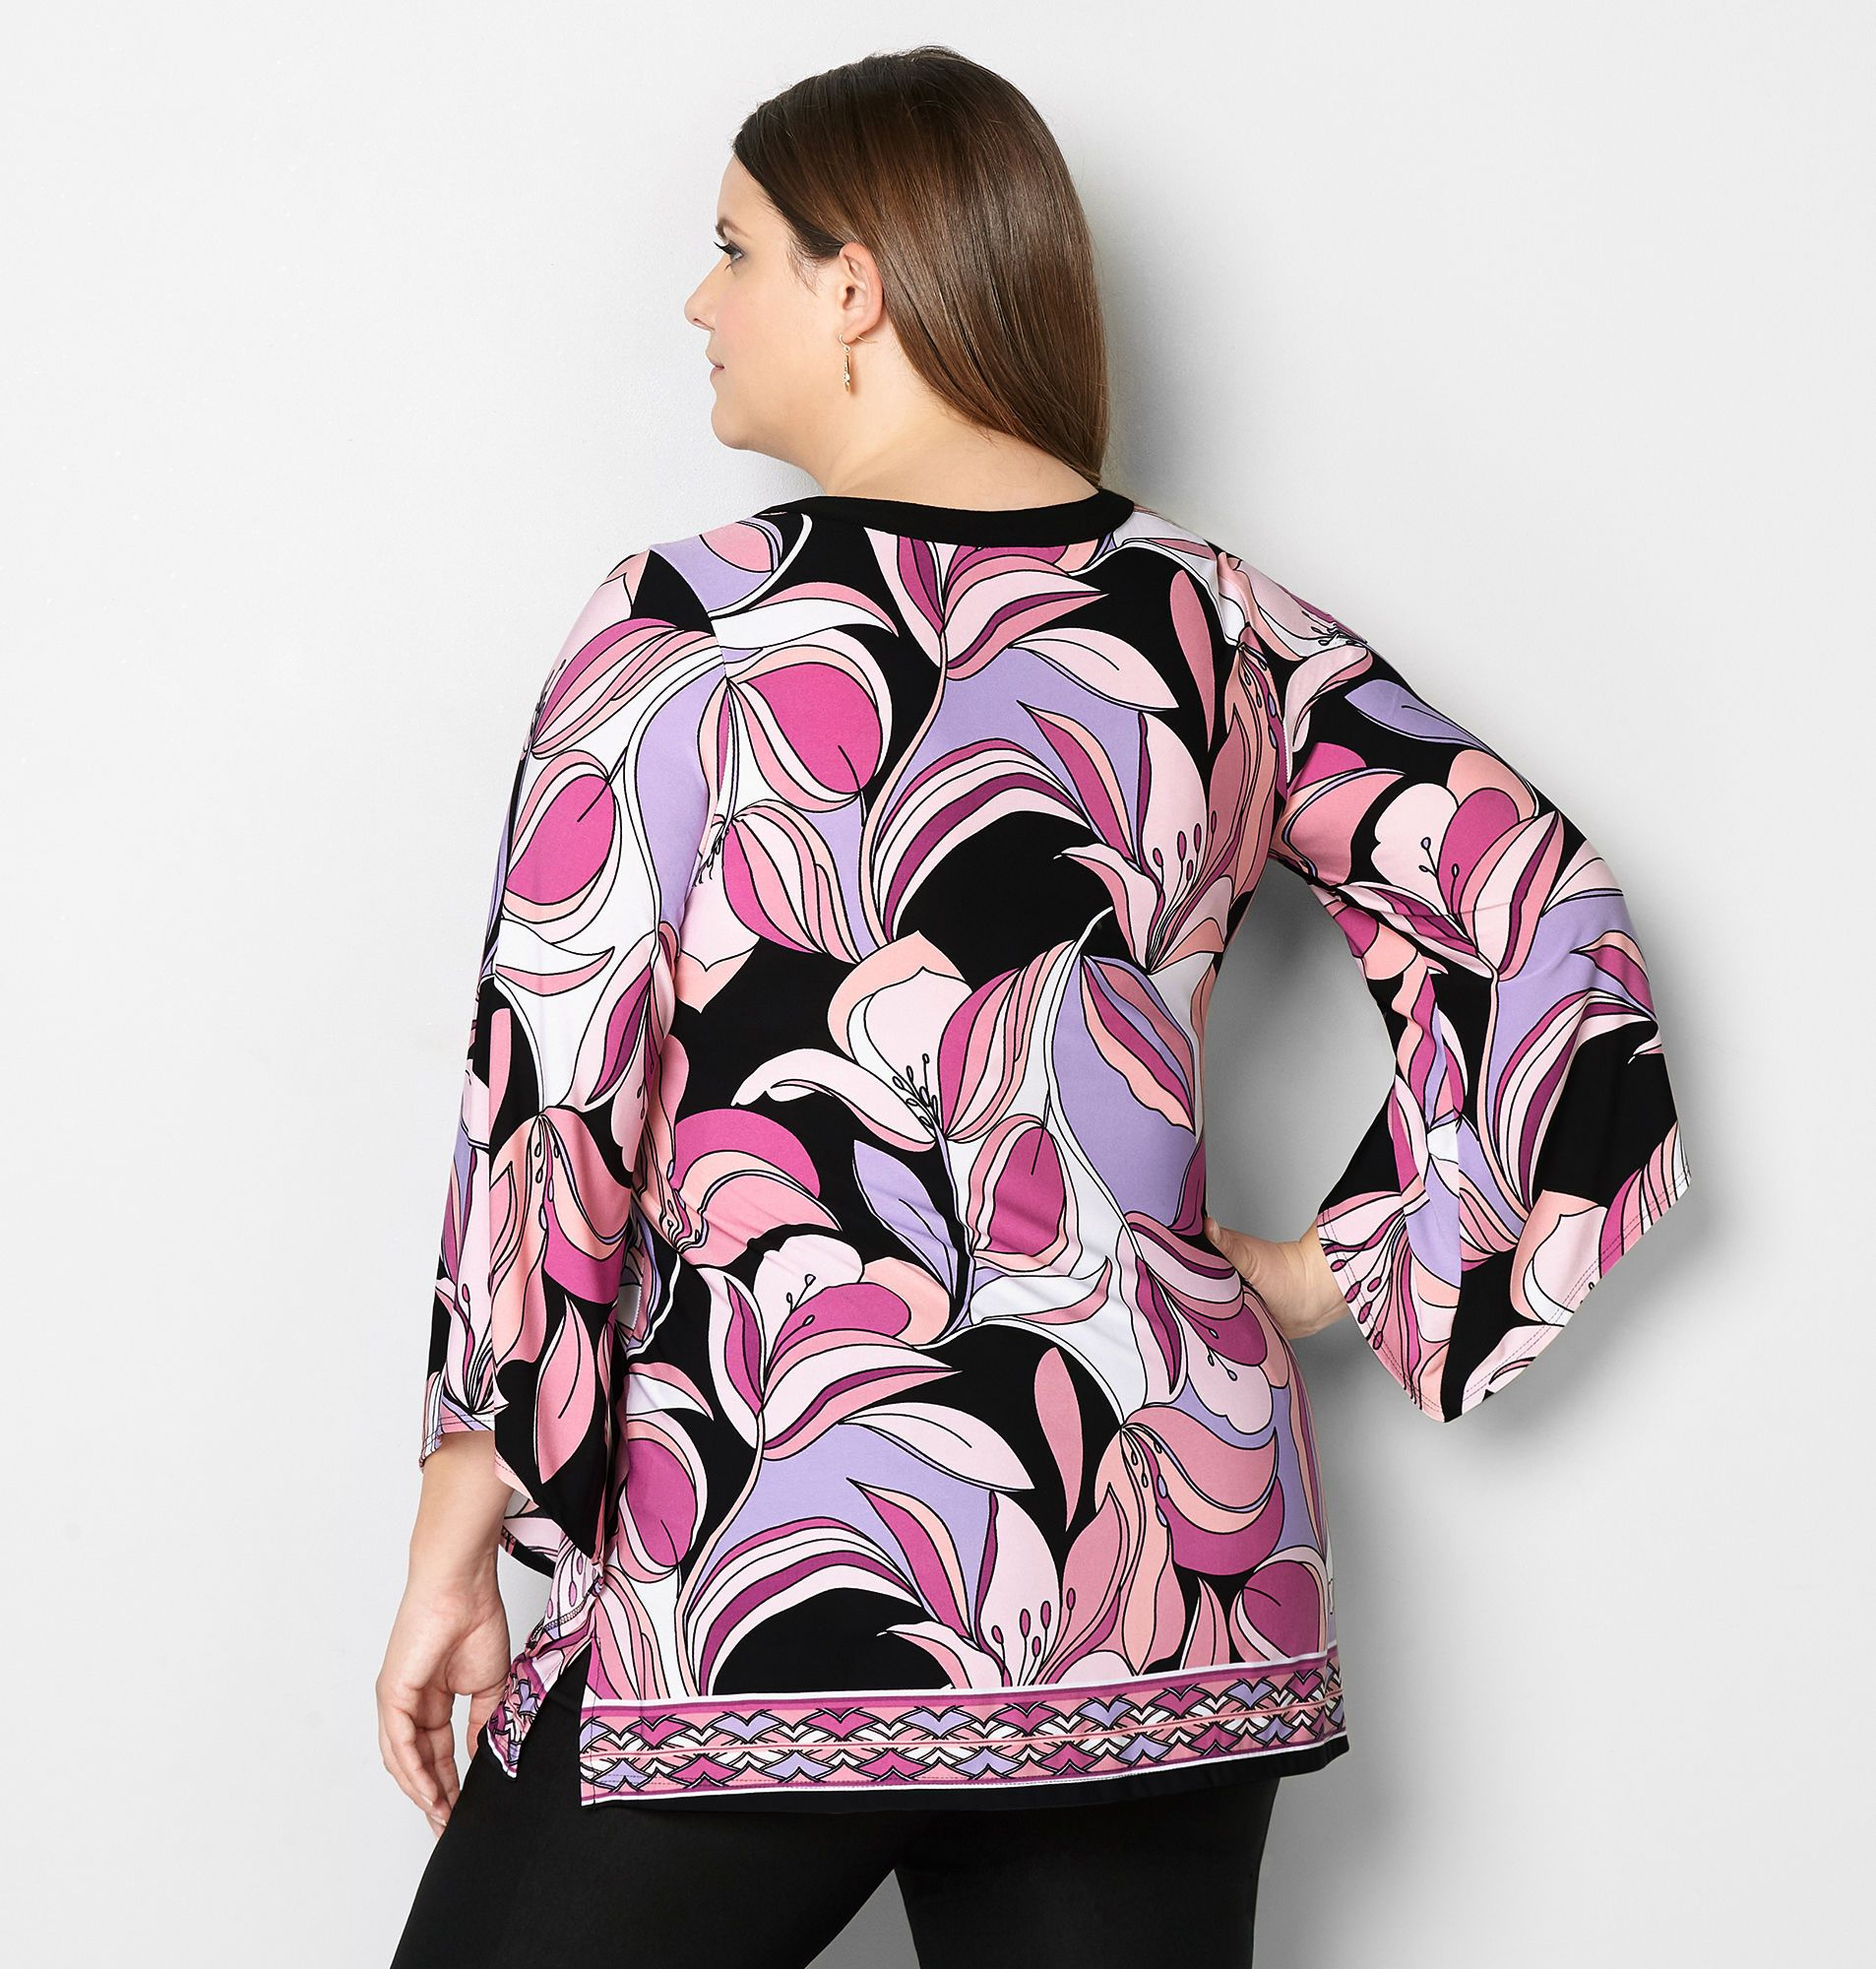 90be4bd4862 Plus Size Fashions · Groovy Flower Border Top - Avenue